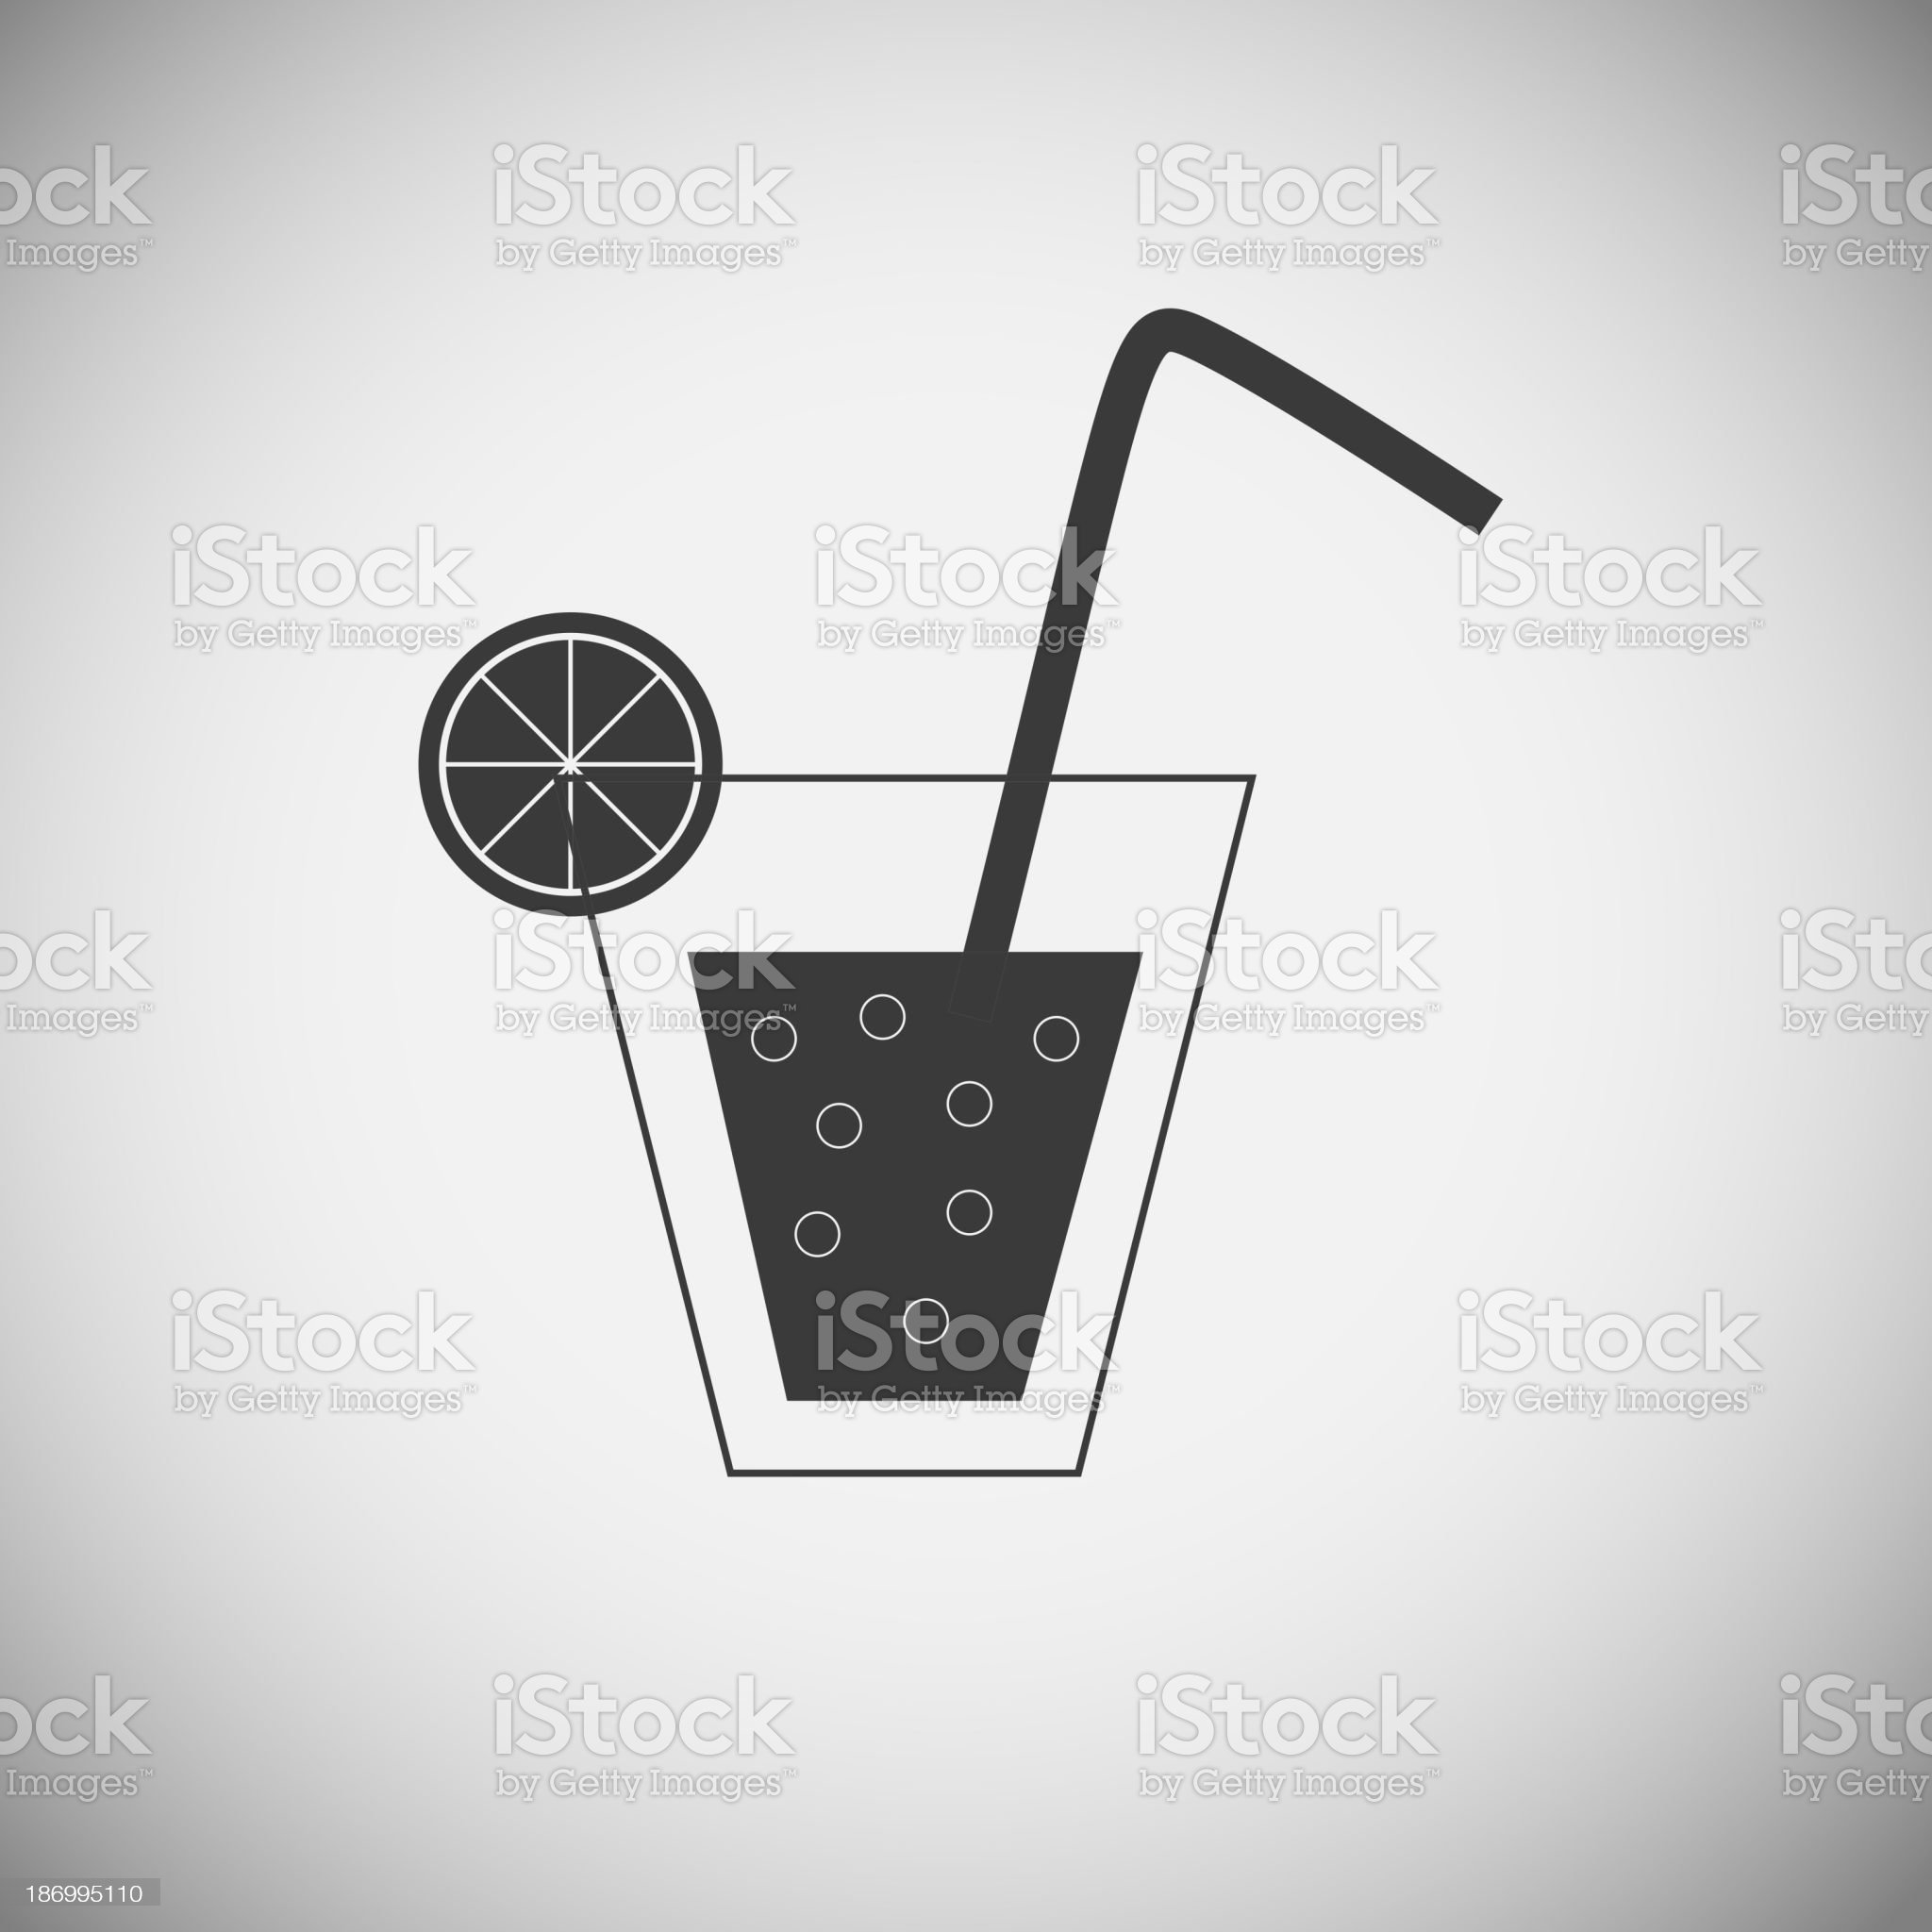 Drink application icons royalty-free stock vector art